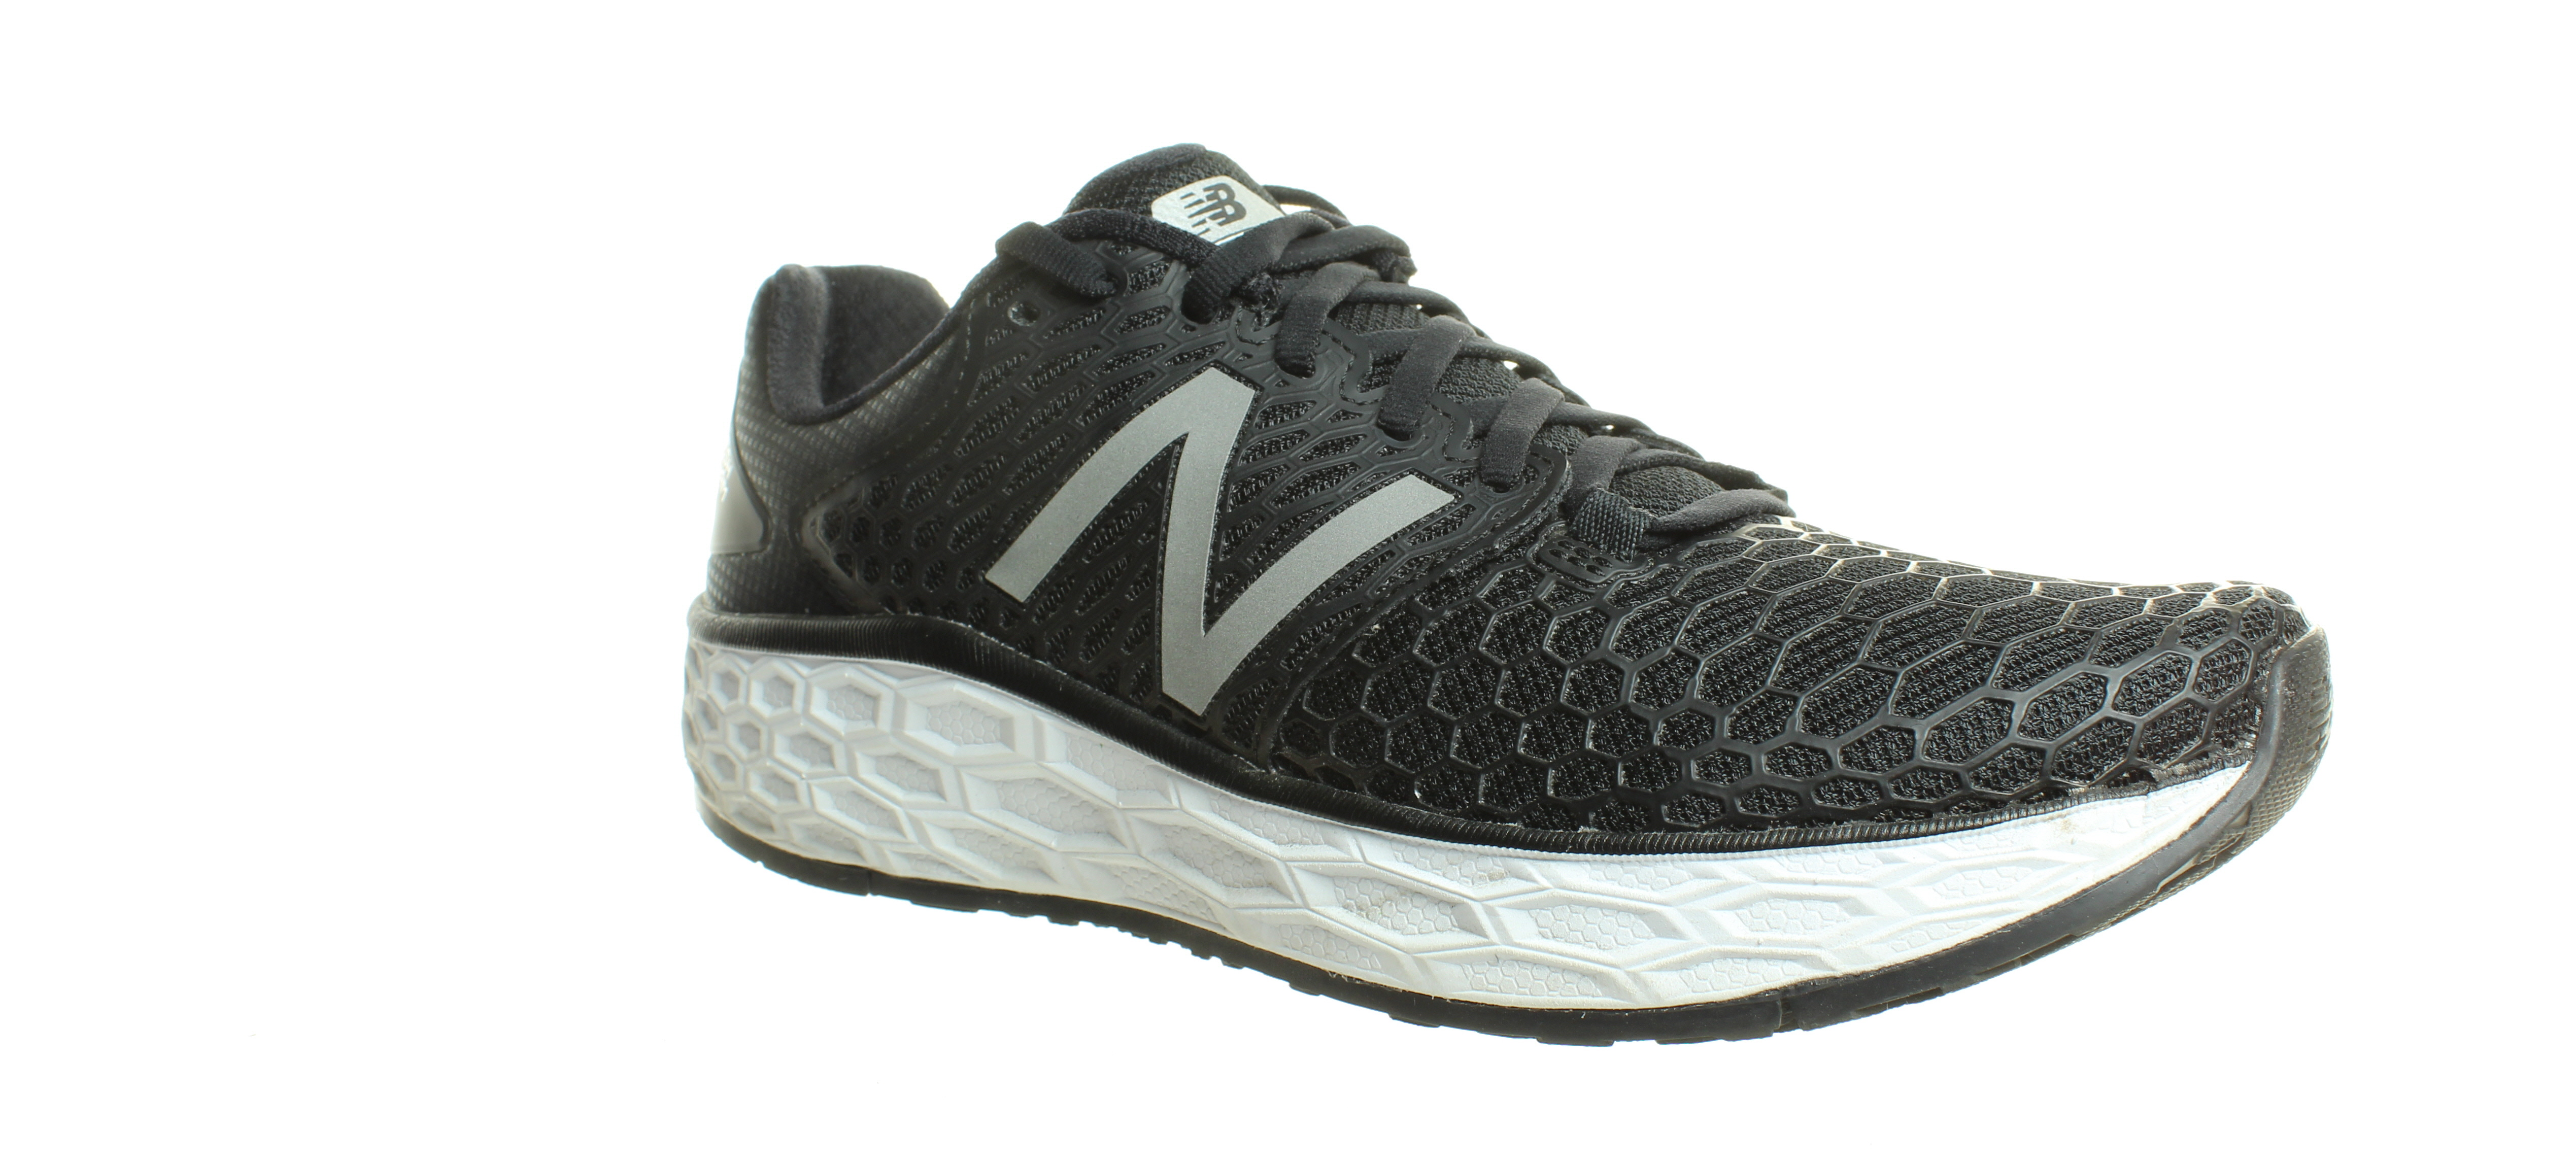 Black Running Shoes Size 10.5 (1290122